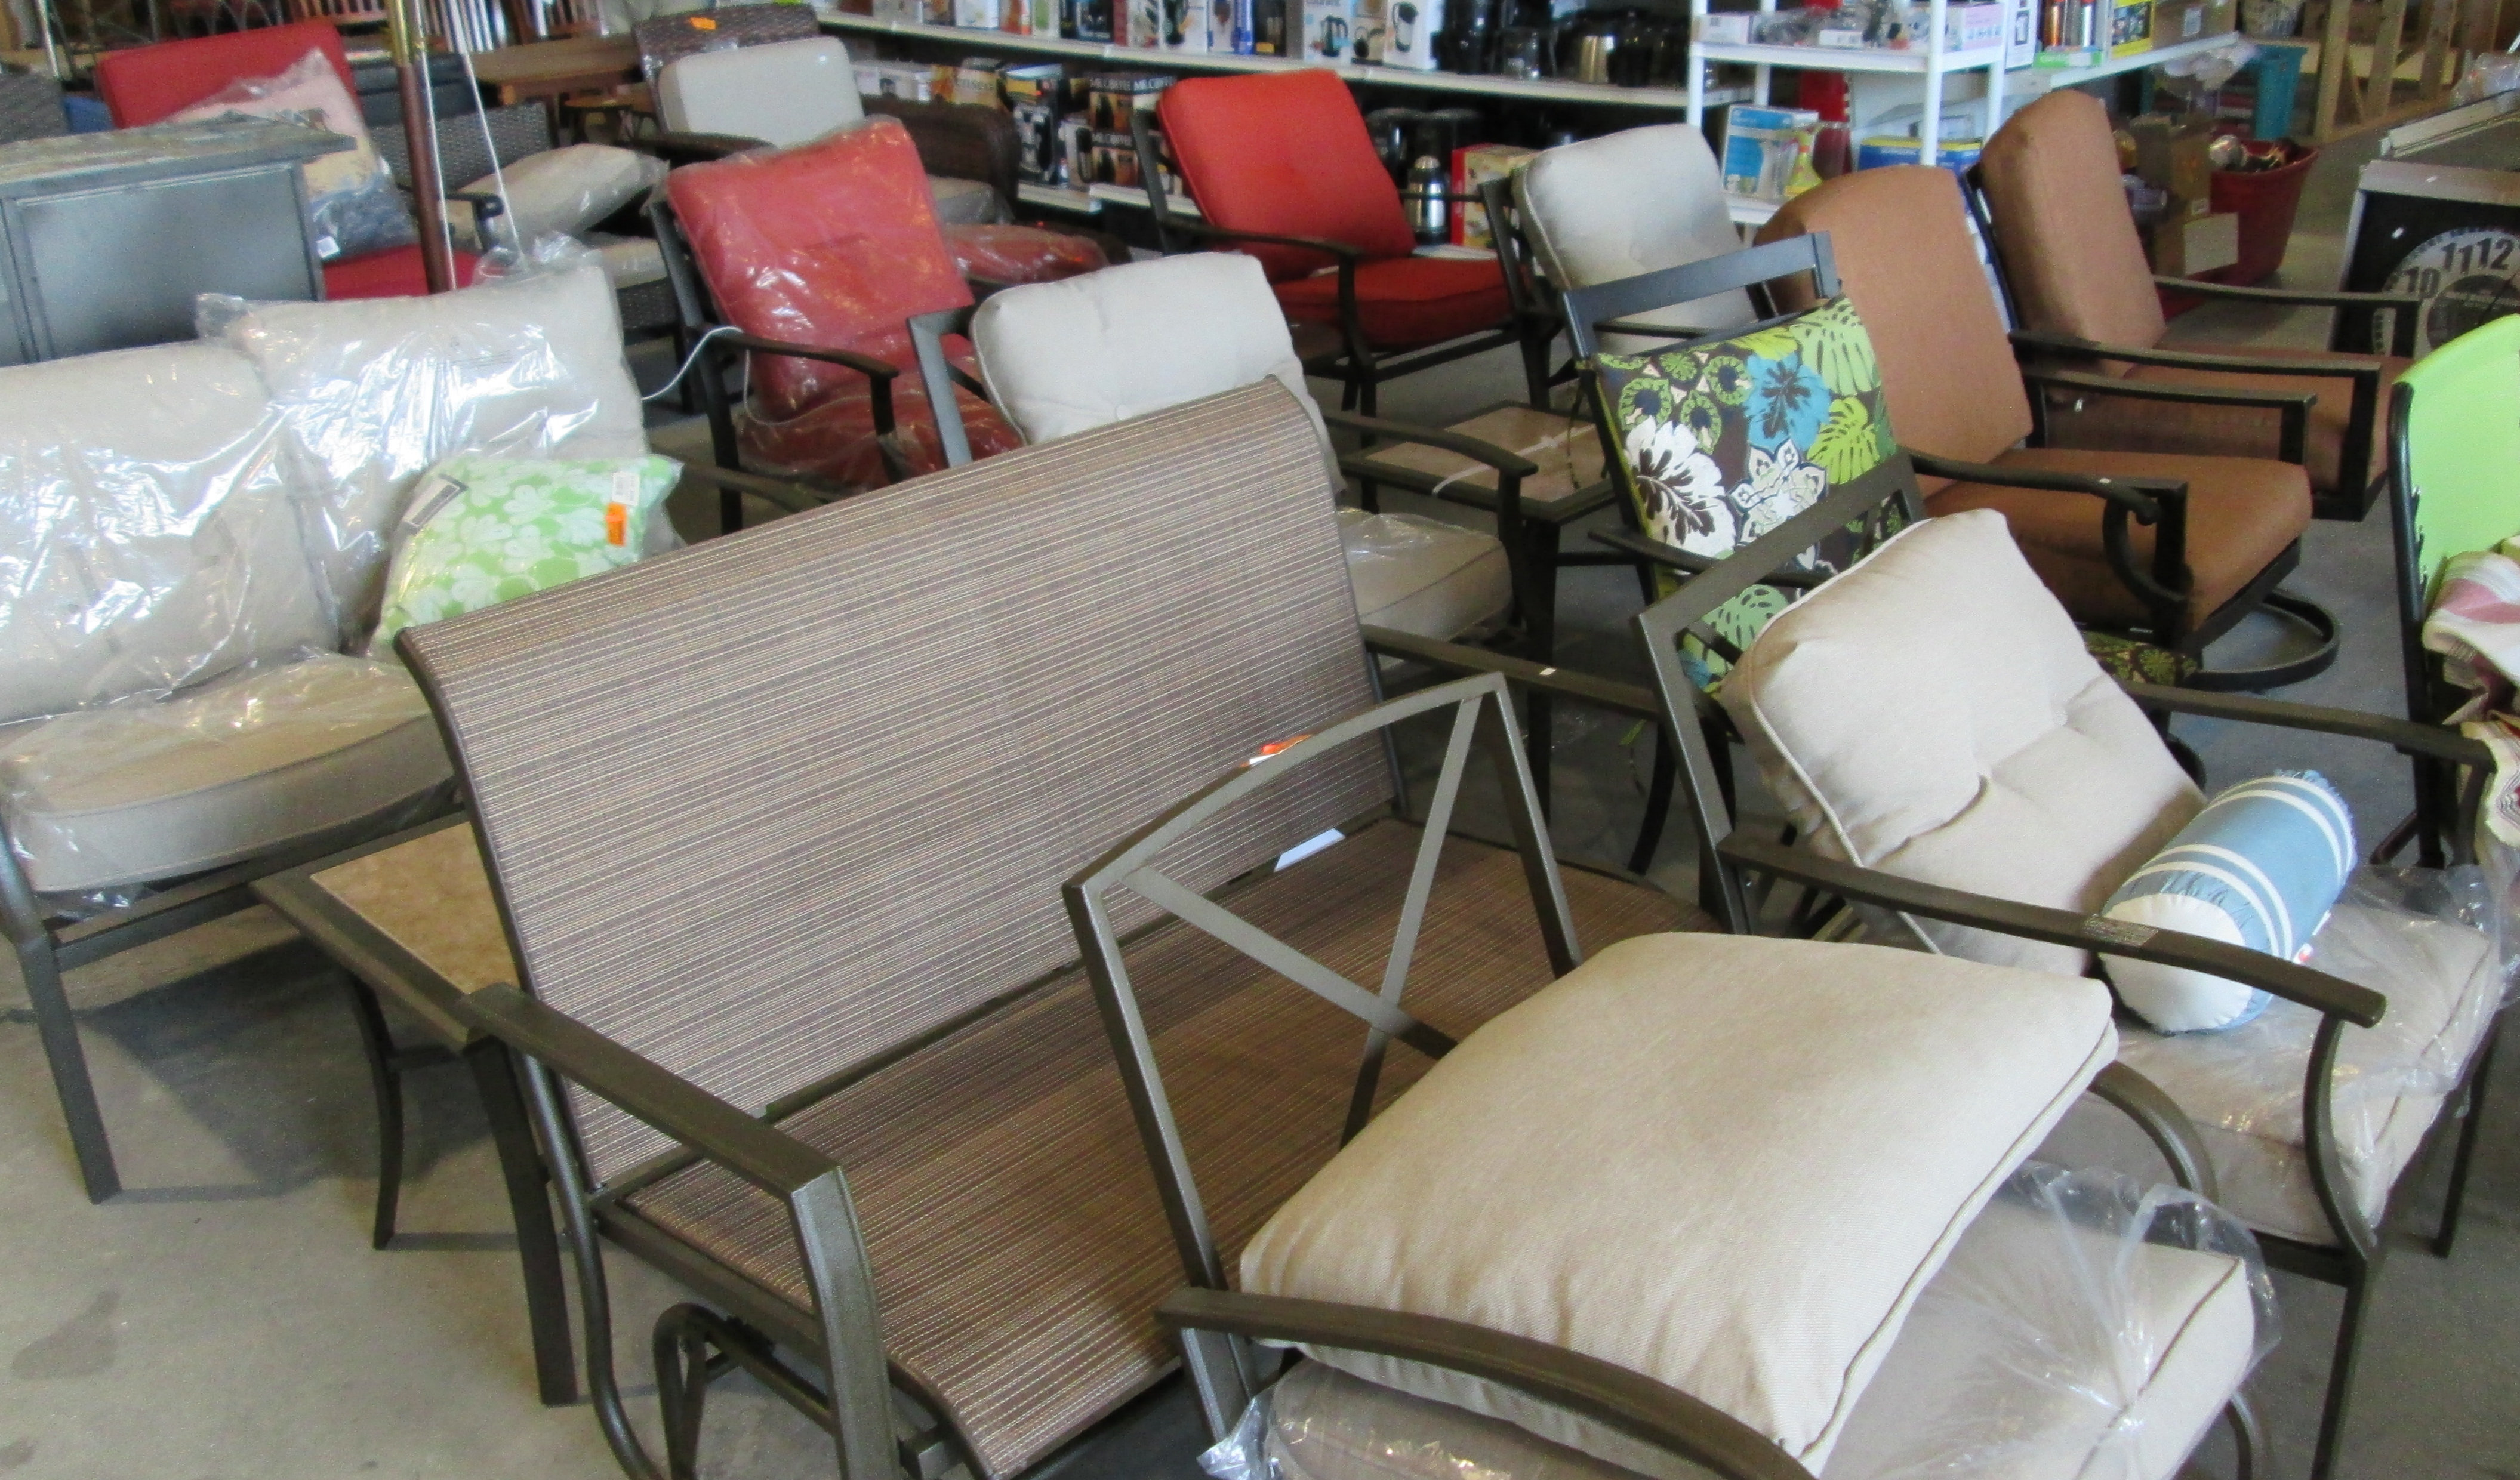 Save 50 75% Off Retail On Patio Furniture Everyday.